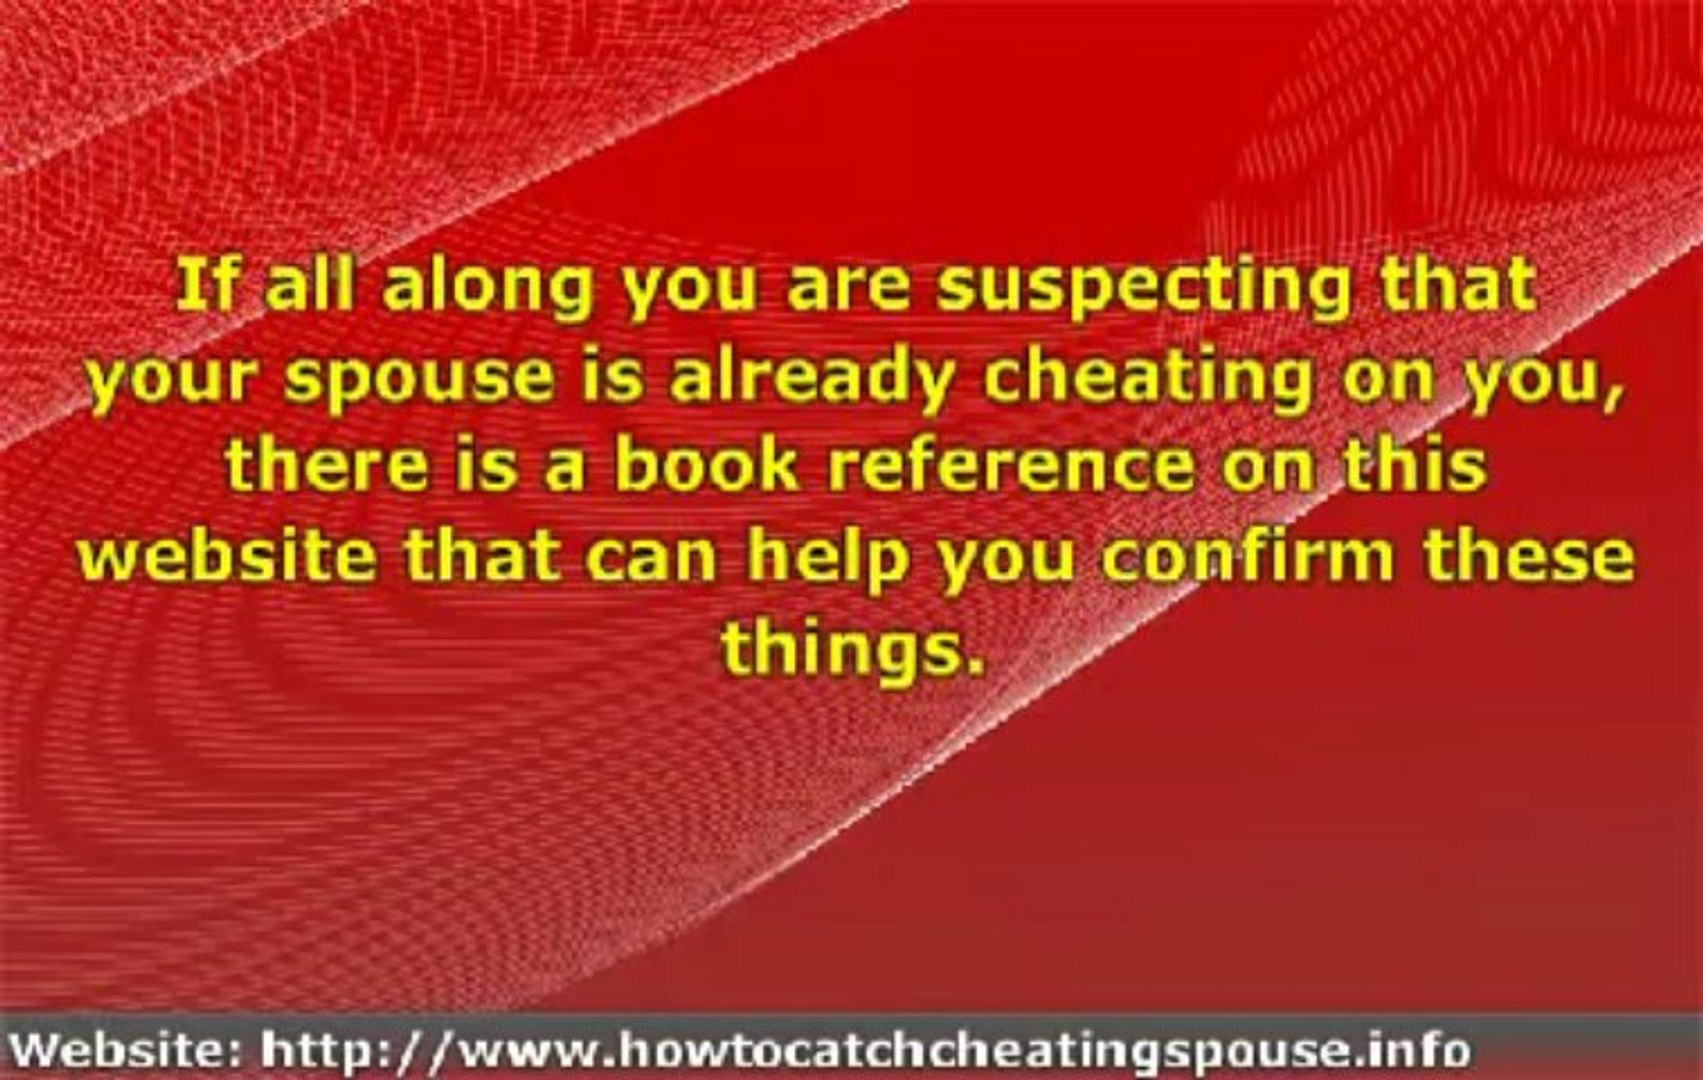 How To Catch A Cheating Spouse - Catch Spouse Cheating Guide